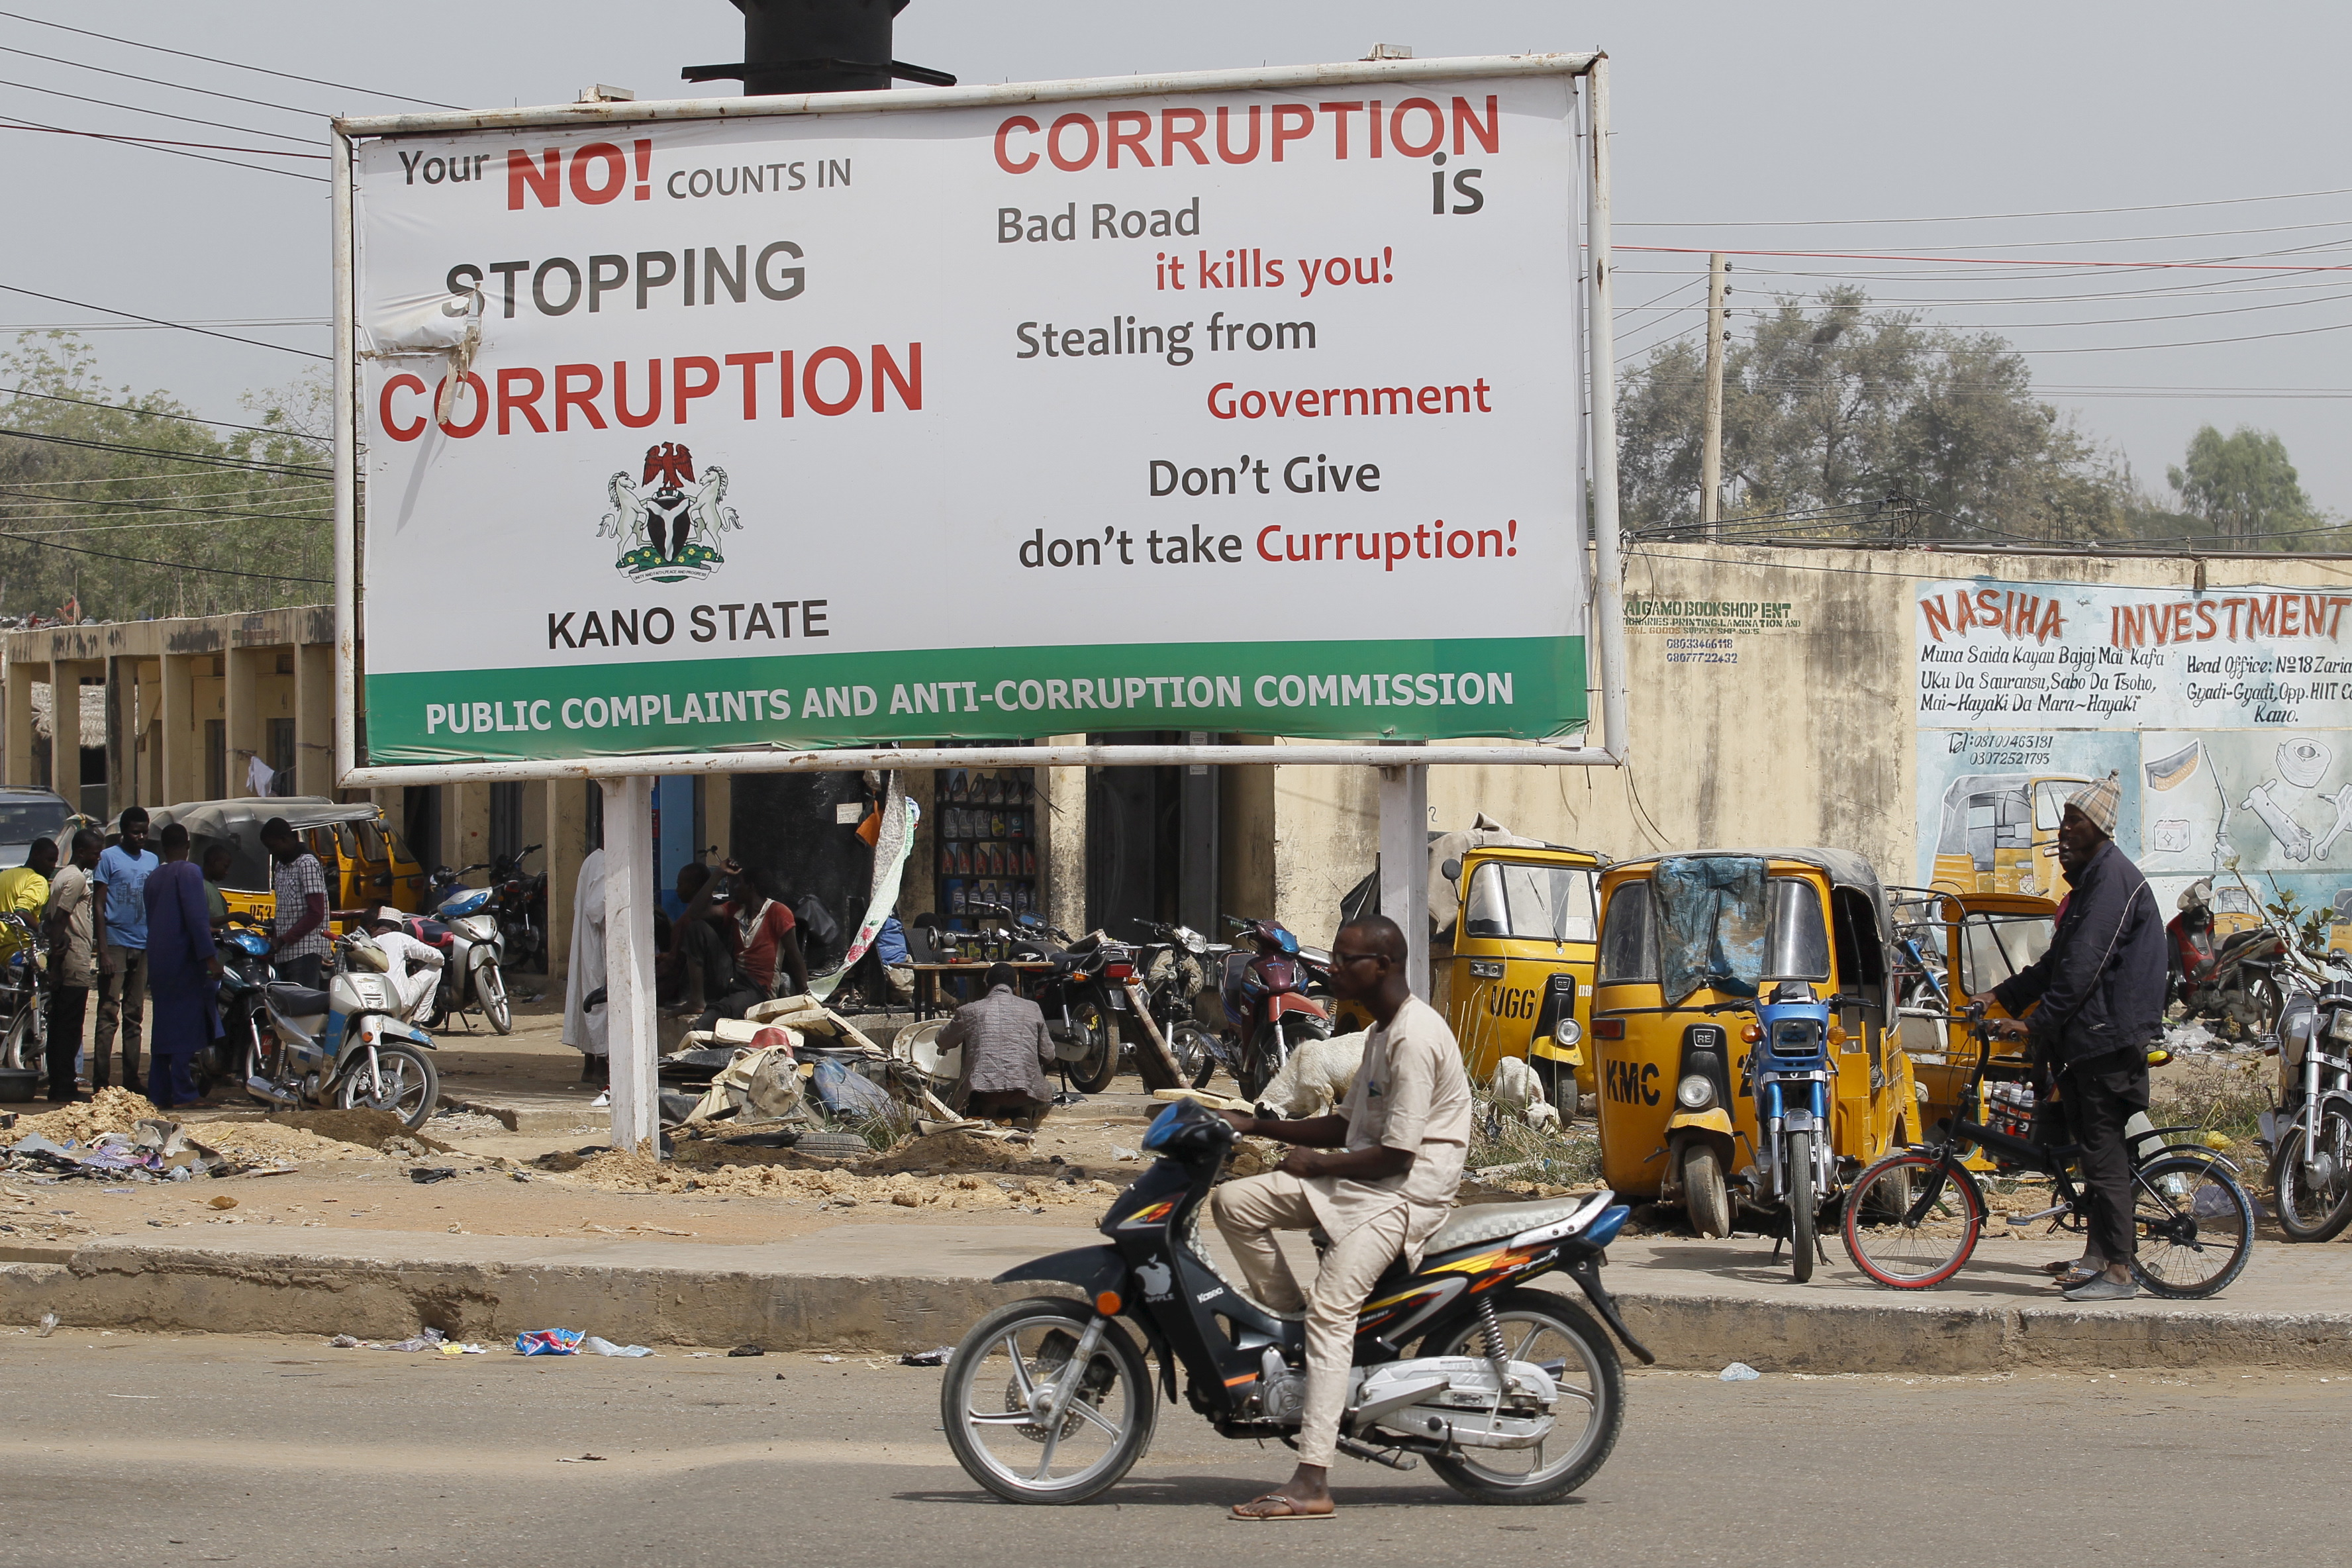 A man on a motorcycle sits near a signboard campaigning against corruption along a road in Dangi district in Nigeria's northern city of Kano, January 19, 2016. True to his election promises, Nigerian President Muhammadu Buhari has gone all out on corruption, alleging mind-boggling sums plundered from state coffers and giving investigators licence to pull in big hitters once thought untouchable. Now comes the hard part: making the charges stick. The first test comes on Wednesday with the opening of the trial of former National Security Advisor Sambo Dasuki, accused of fraud over $68 million of defence spending, part of a wider $2.1 billion in arms deals under scrutiny.